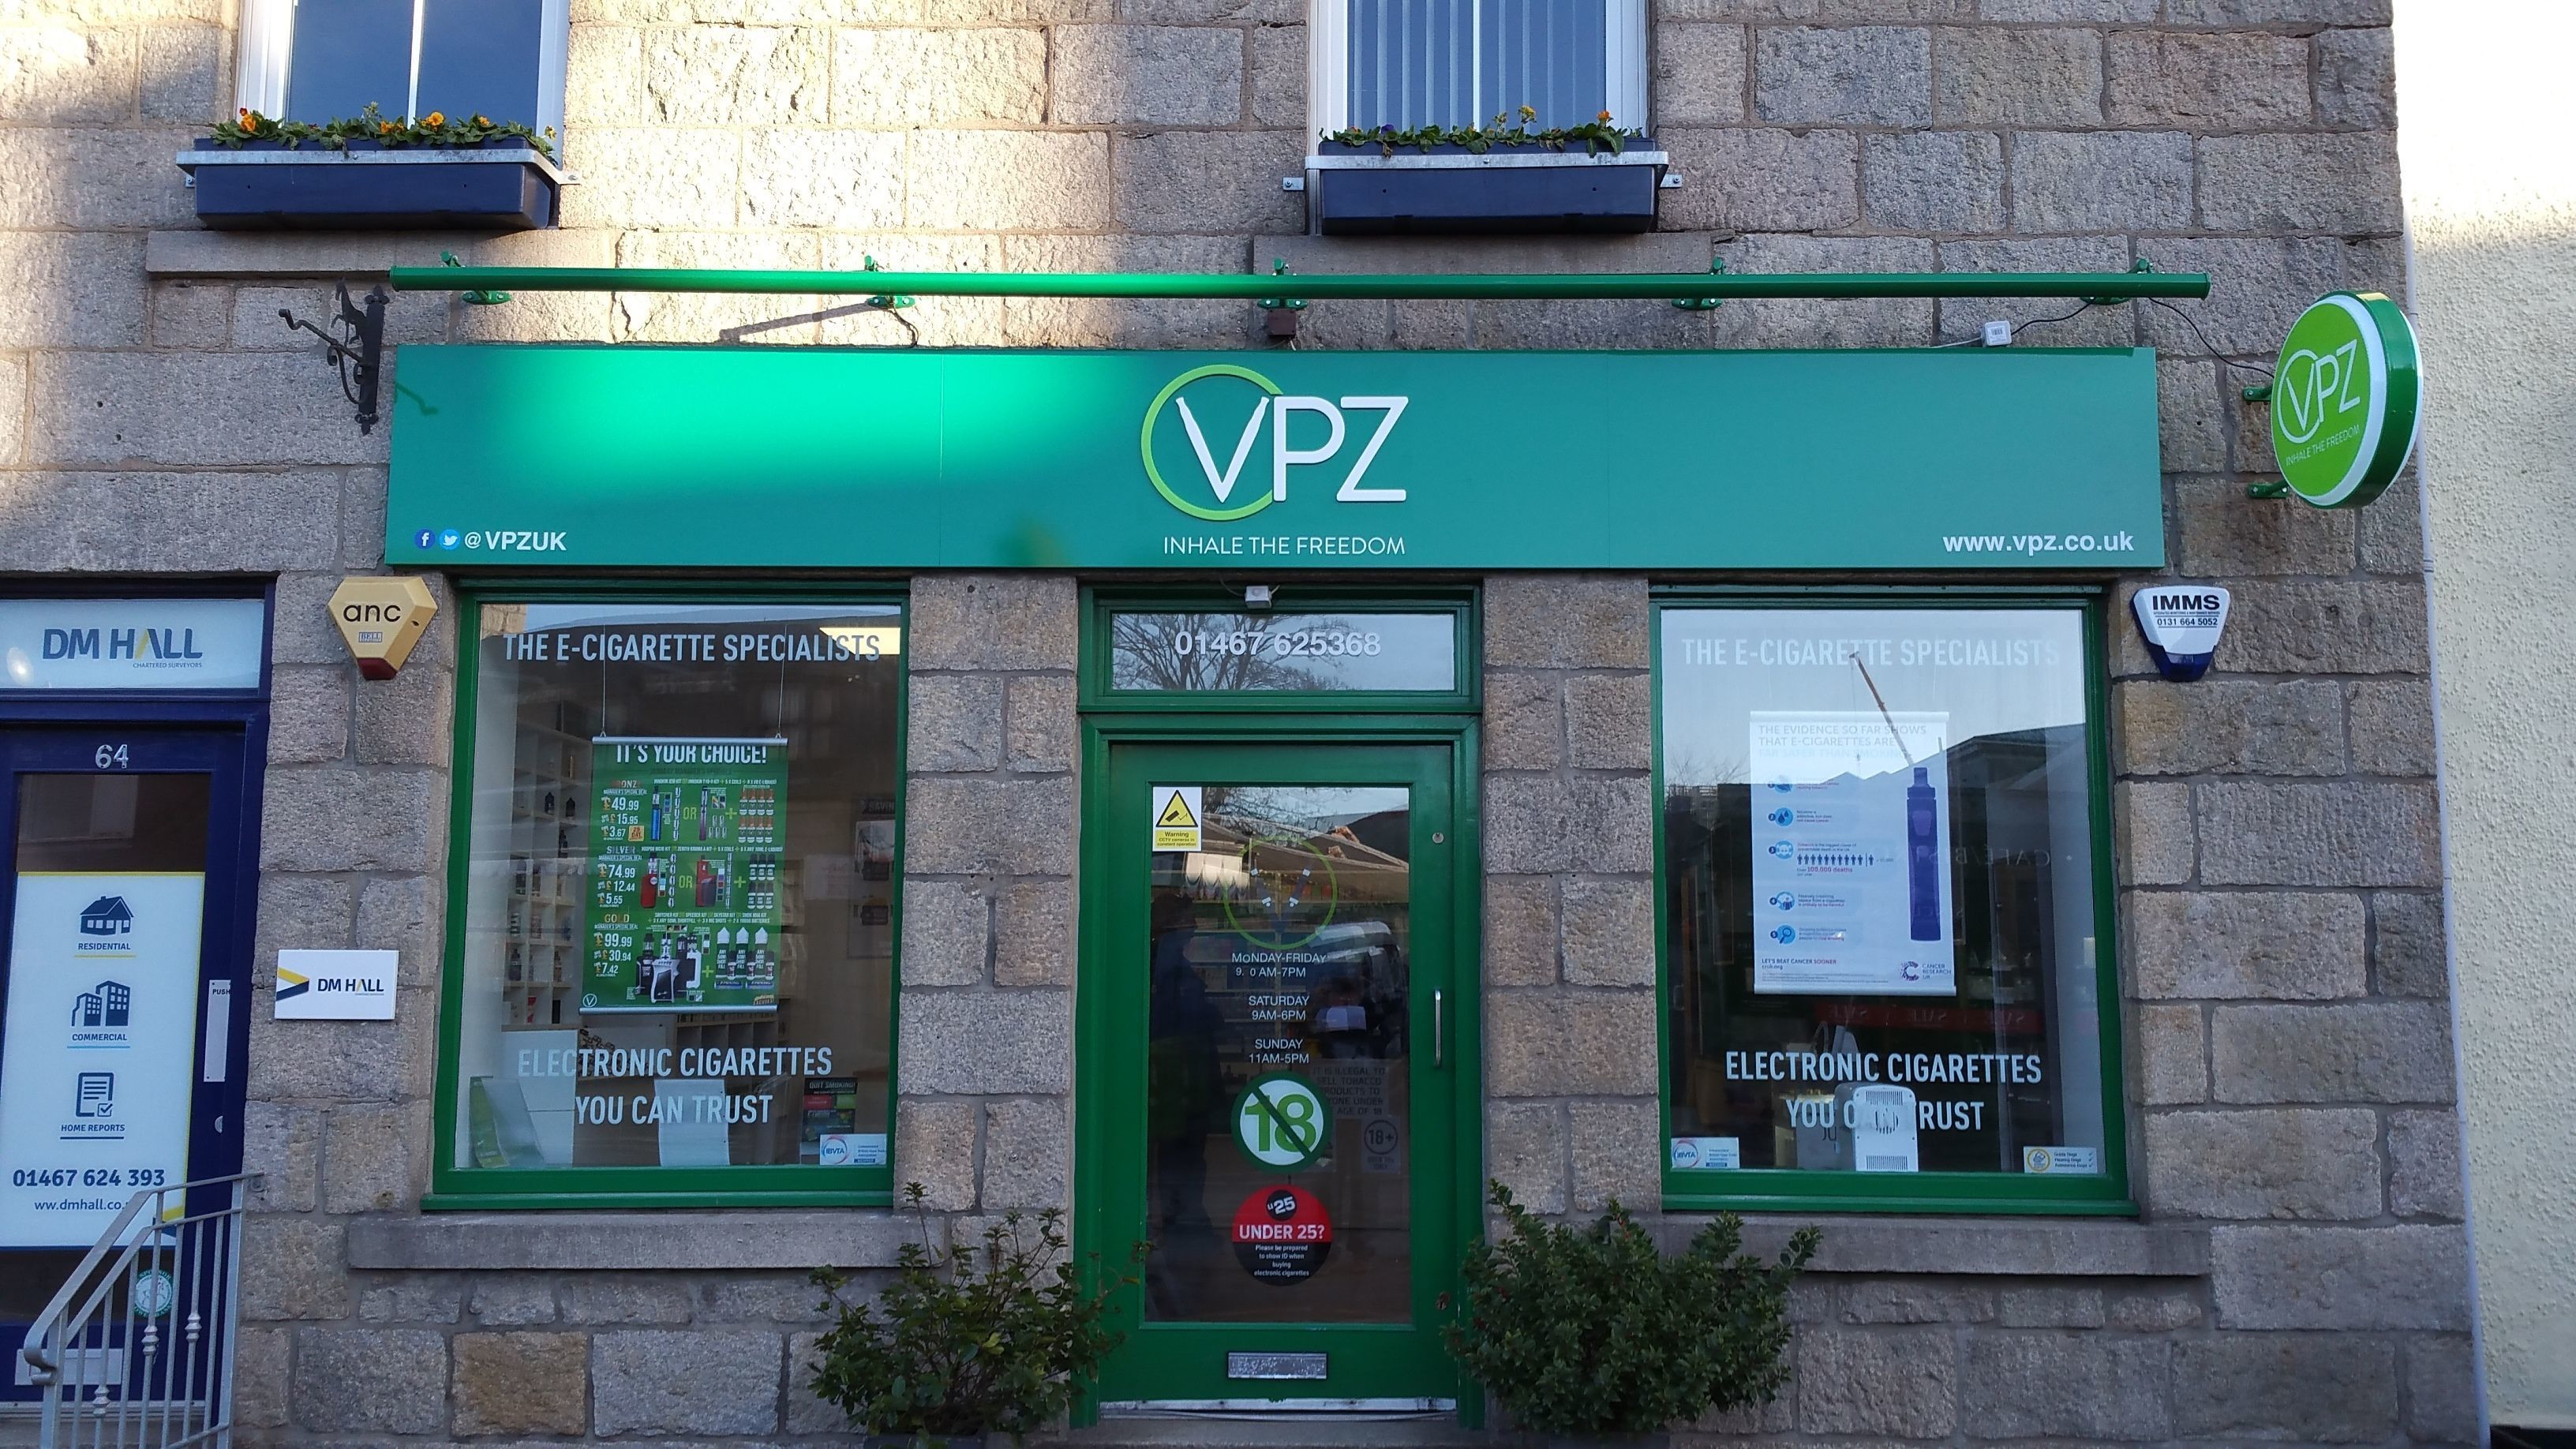 VPZ recruitment drive to bring 1000 new jobs to the UK